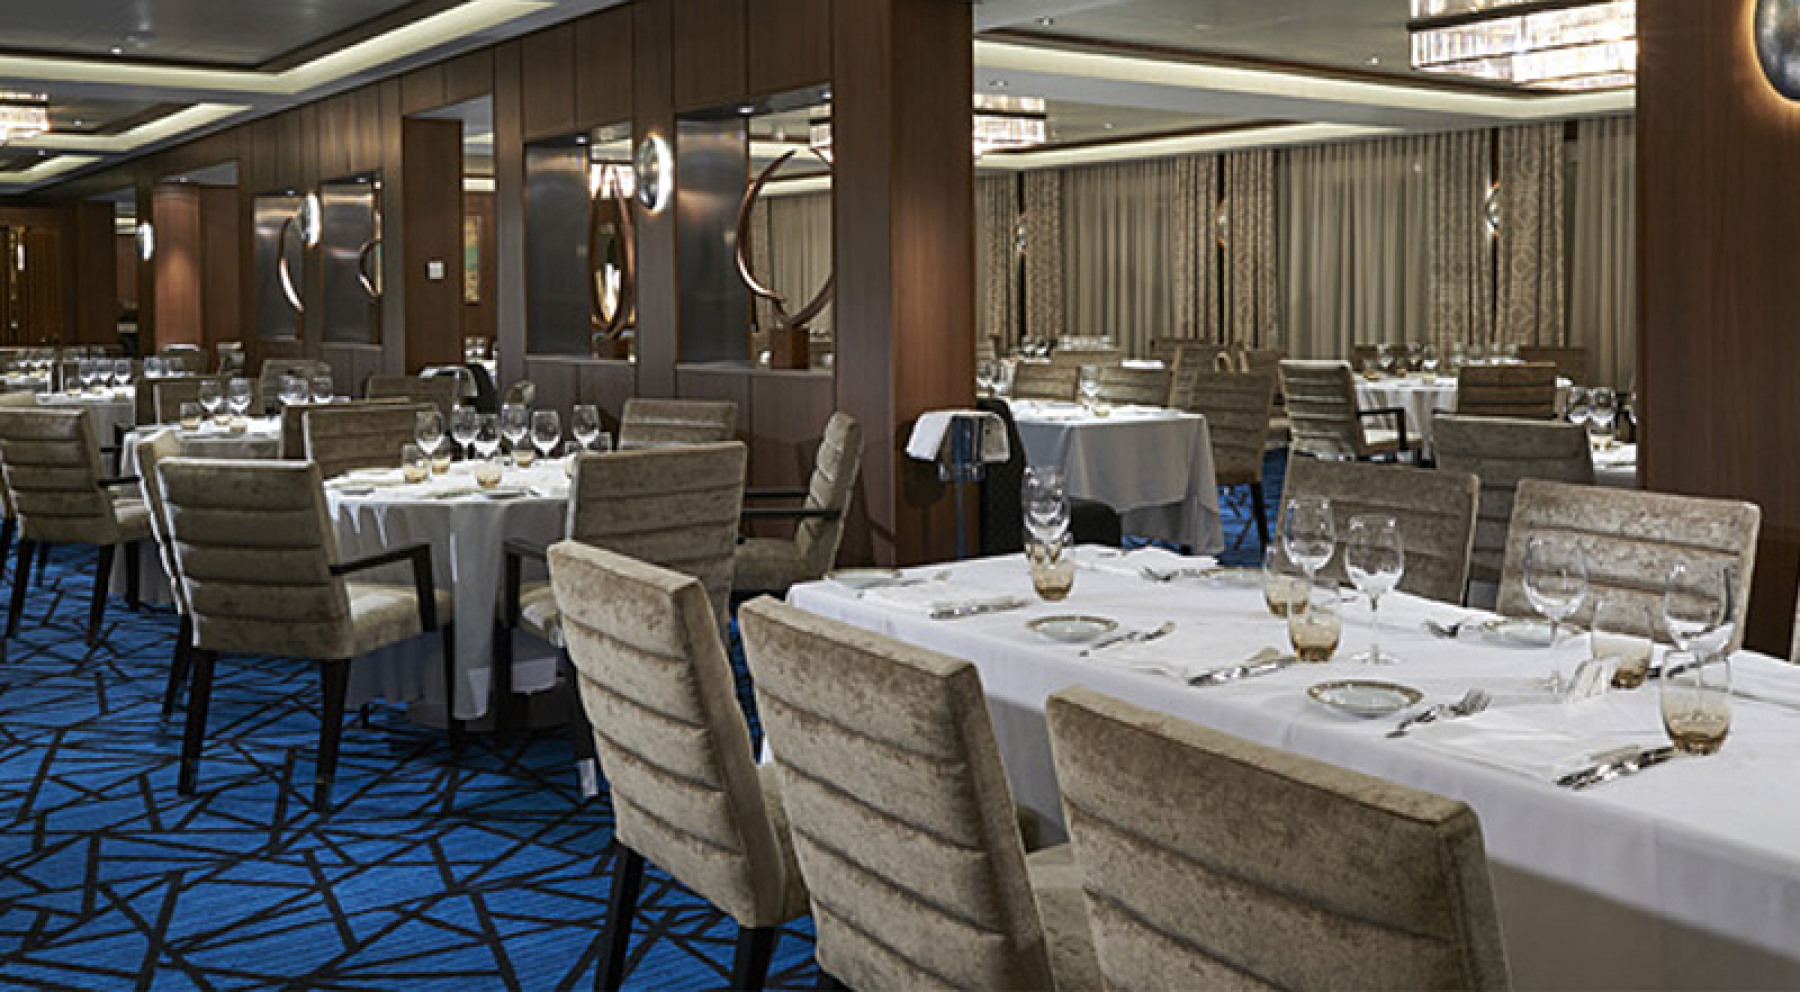 Norwegian Cruise Lines Norwegian Joy Interior Savour.jpg